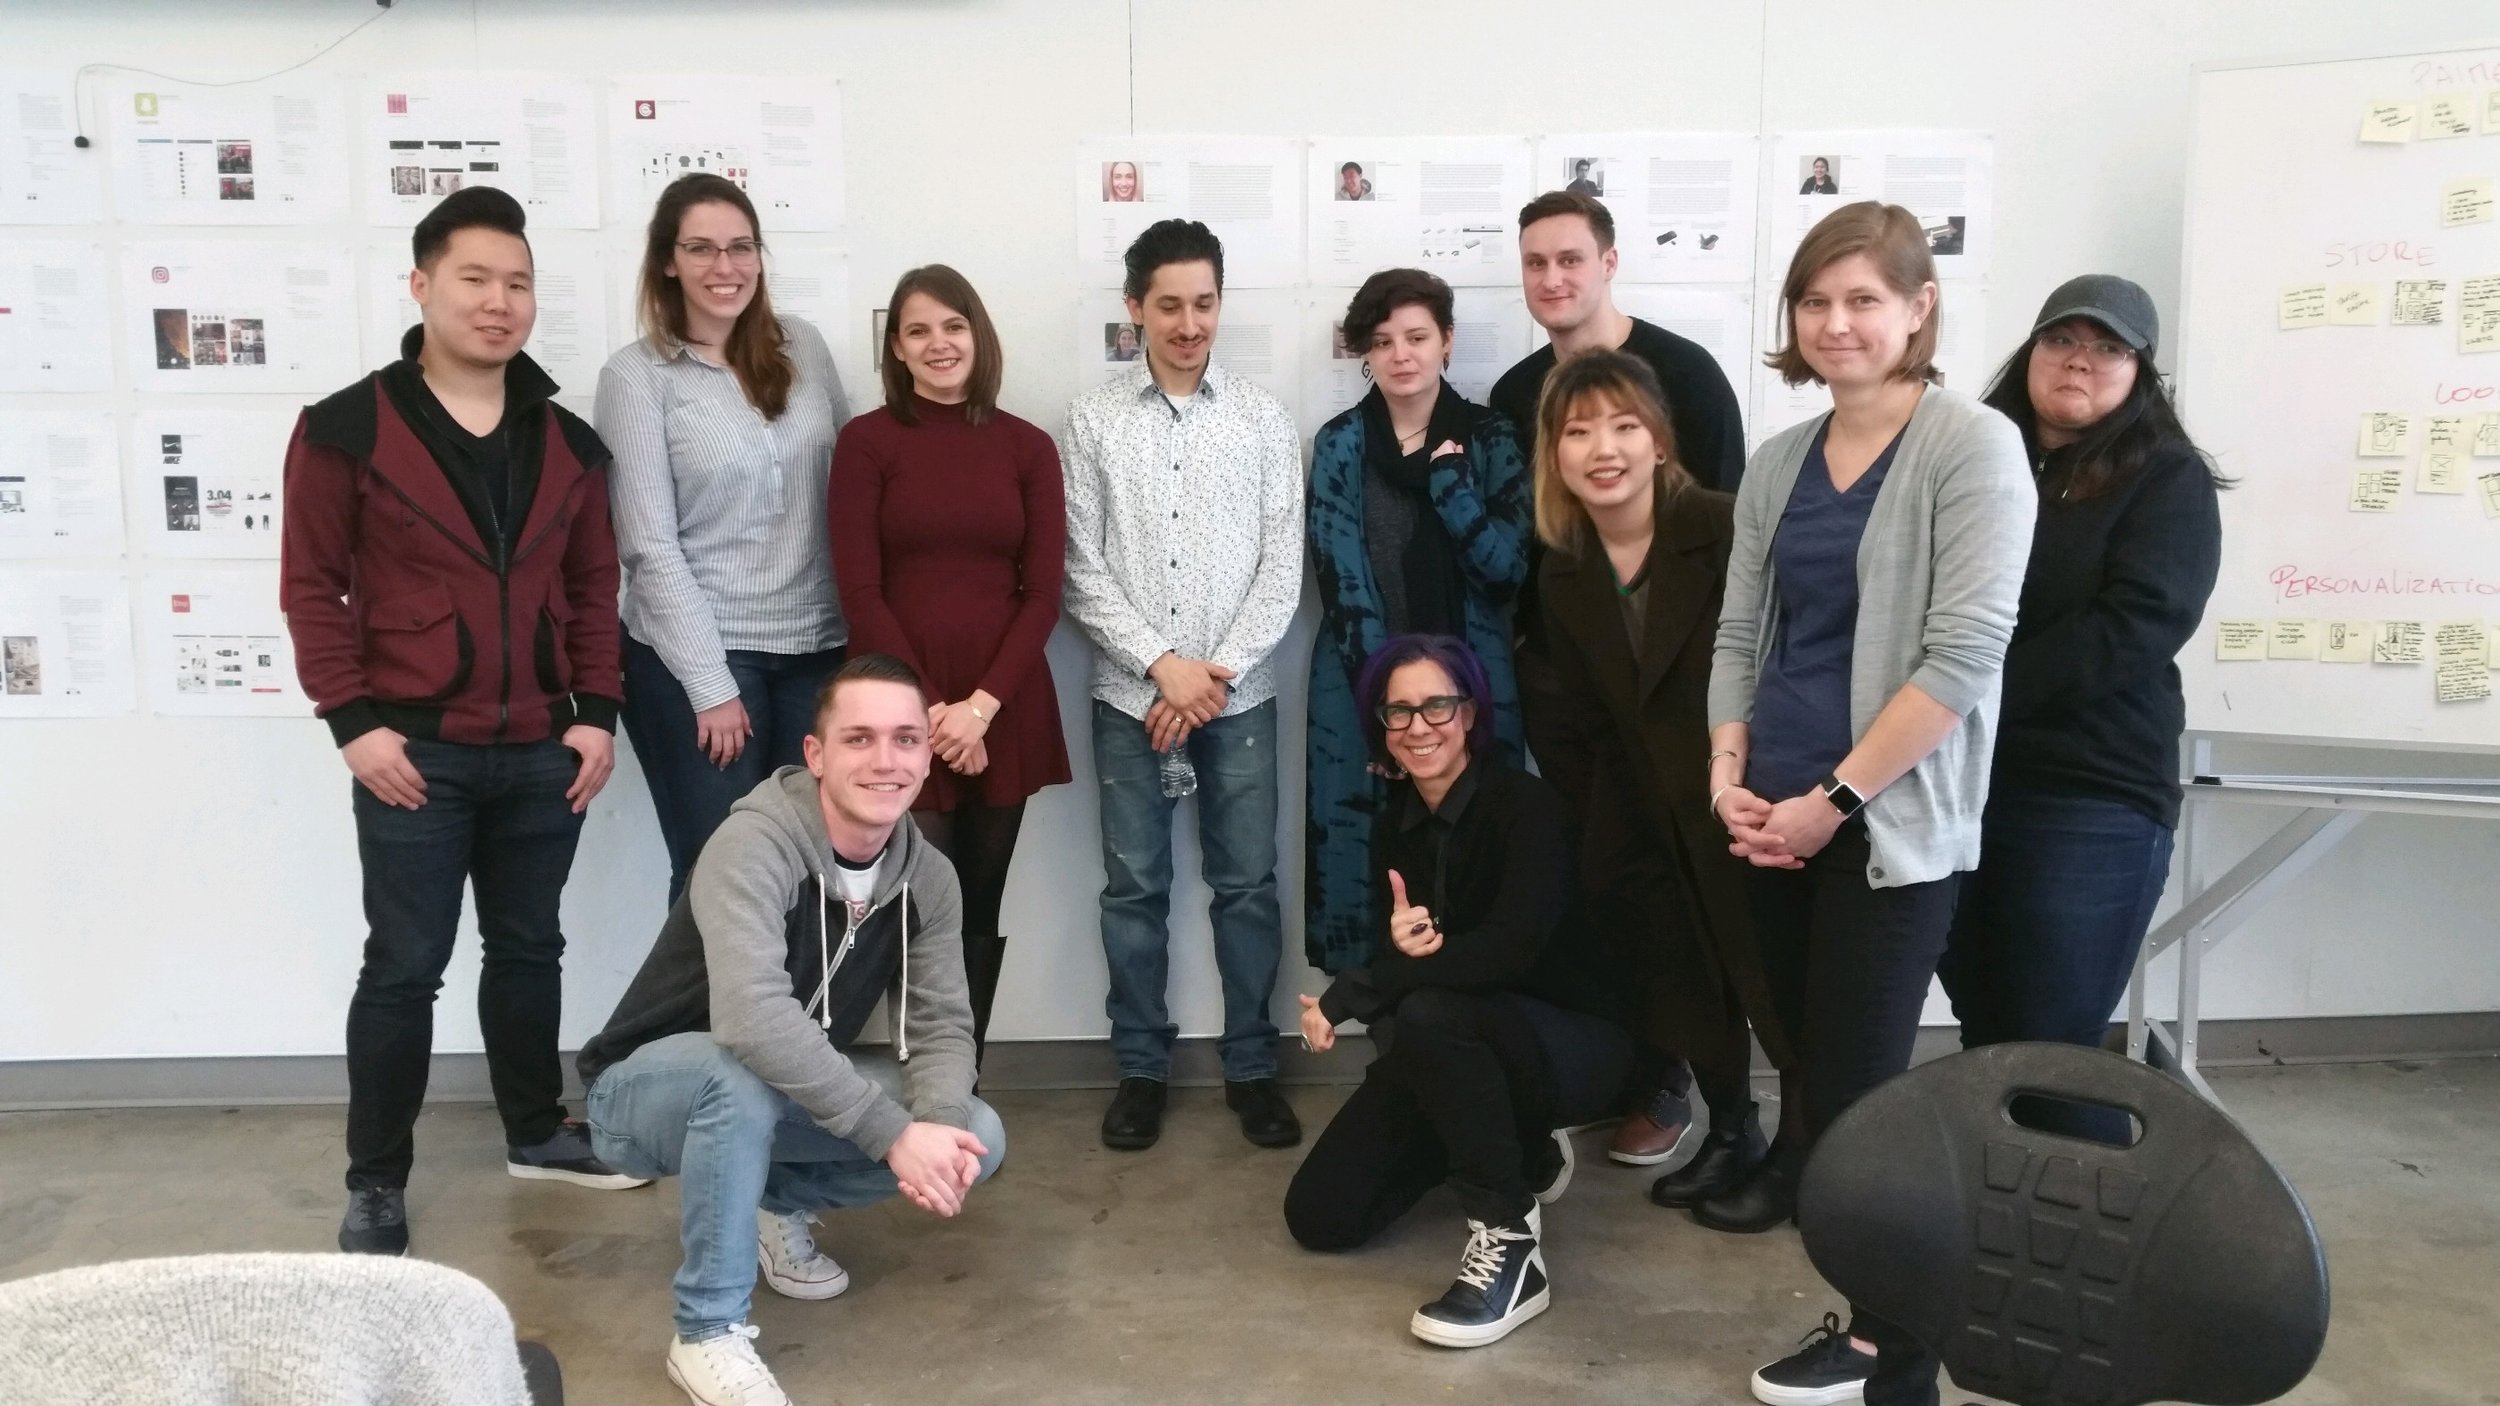 Cornish students and Amazon instructors gather for critique. Four of the students received Amazon summer internships in 2017 in User Experience Design and Visual Design. Three of those students are now full-time Amazon employees.